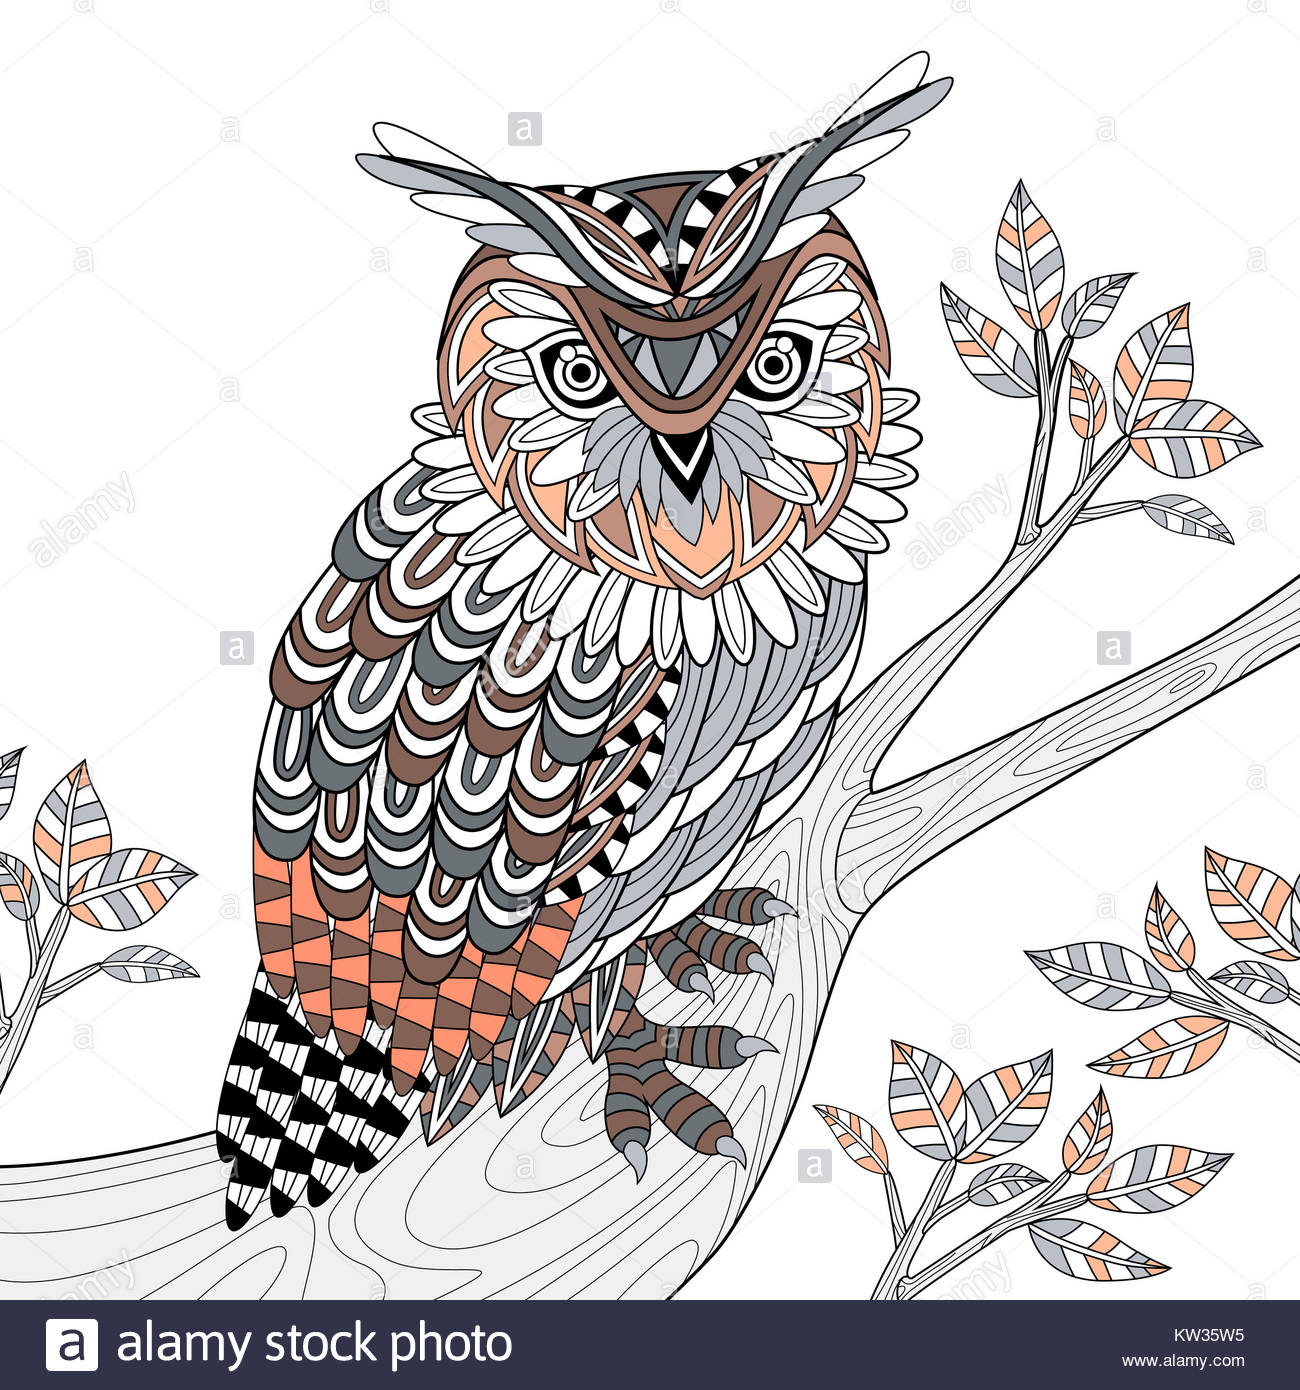 wise owl coloring page in exquisite style Stock Photo: 170330193 - Alamy